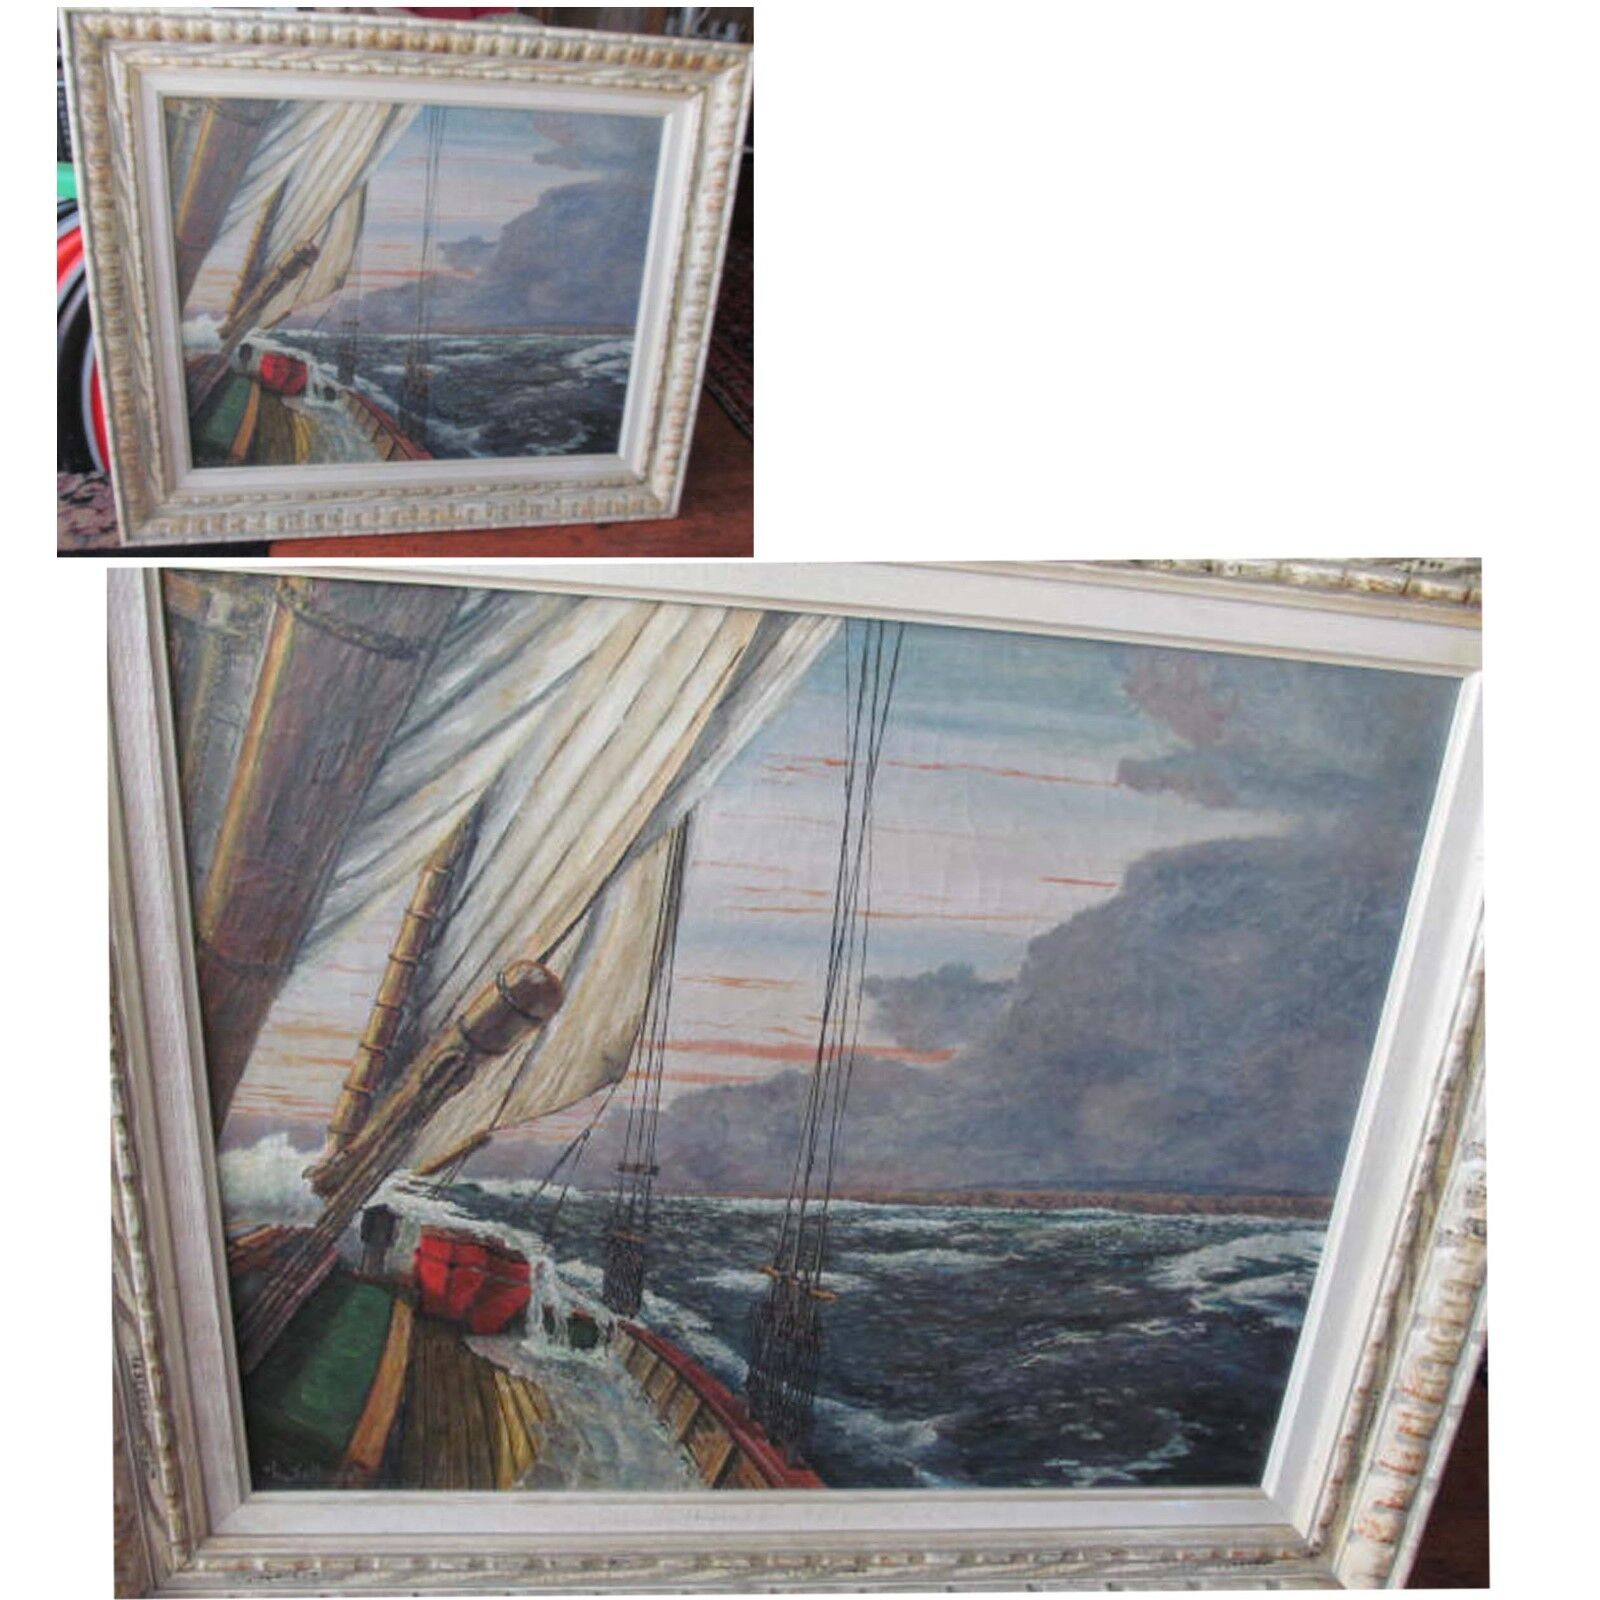 Beautiful Vintage Seascape Oil Painting Signed L.Tolhurst Waves Breaking On Bow - $350.00